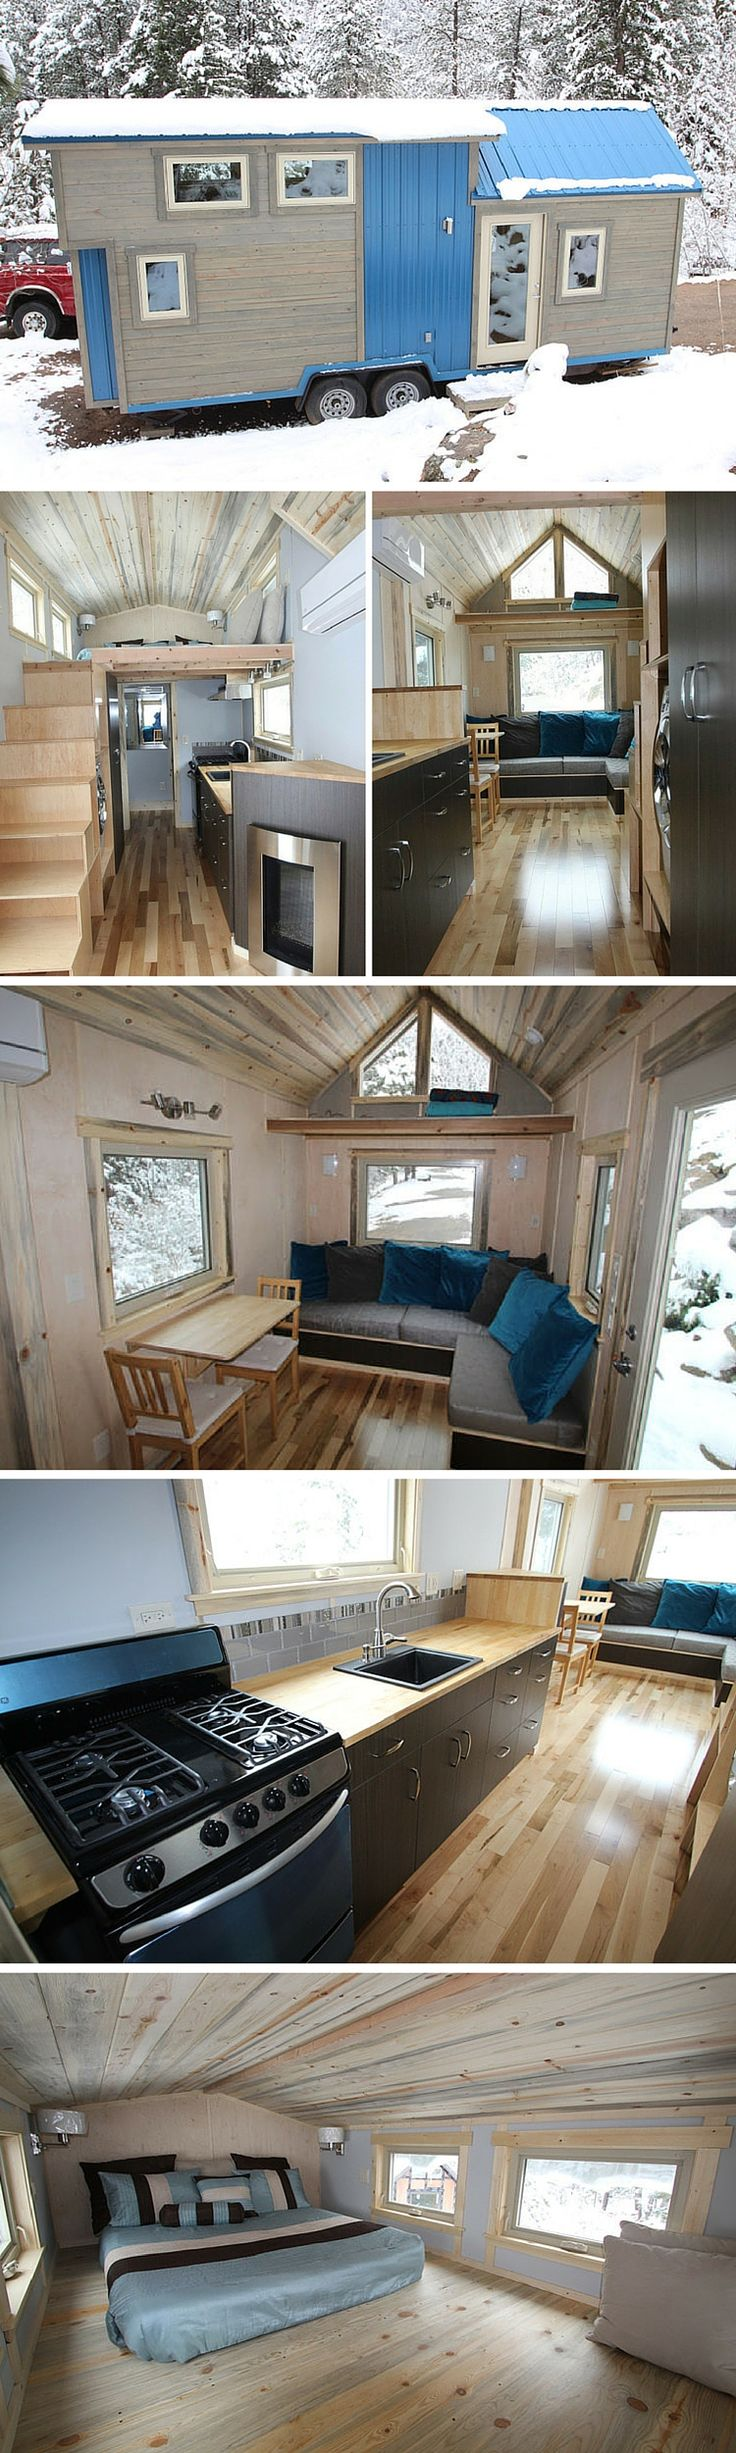 The Blue Sapphire: a 204 sq ft tiny house